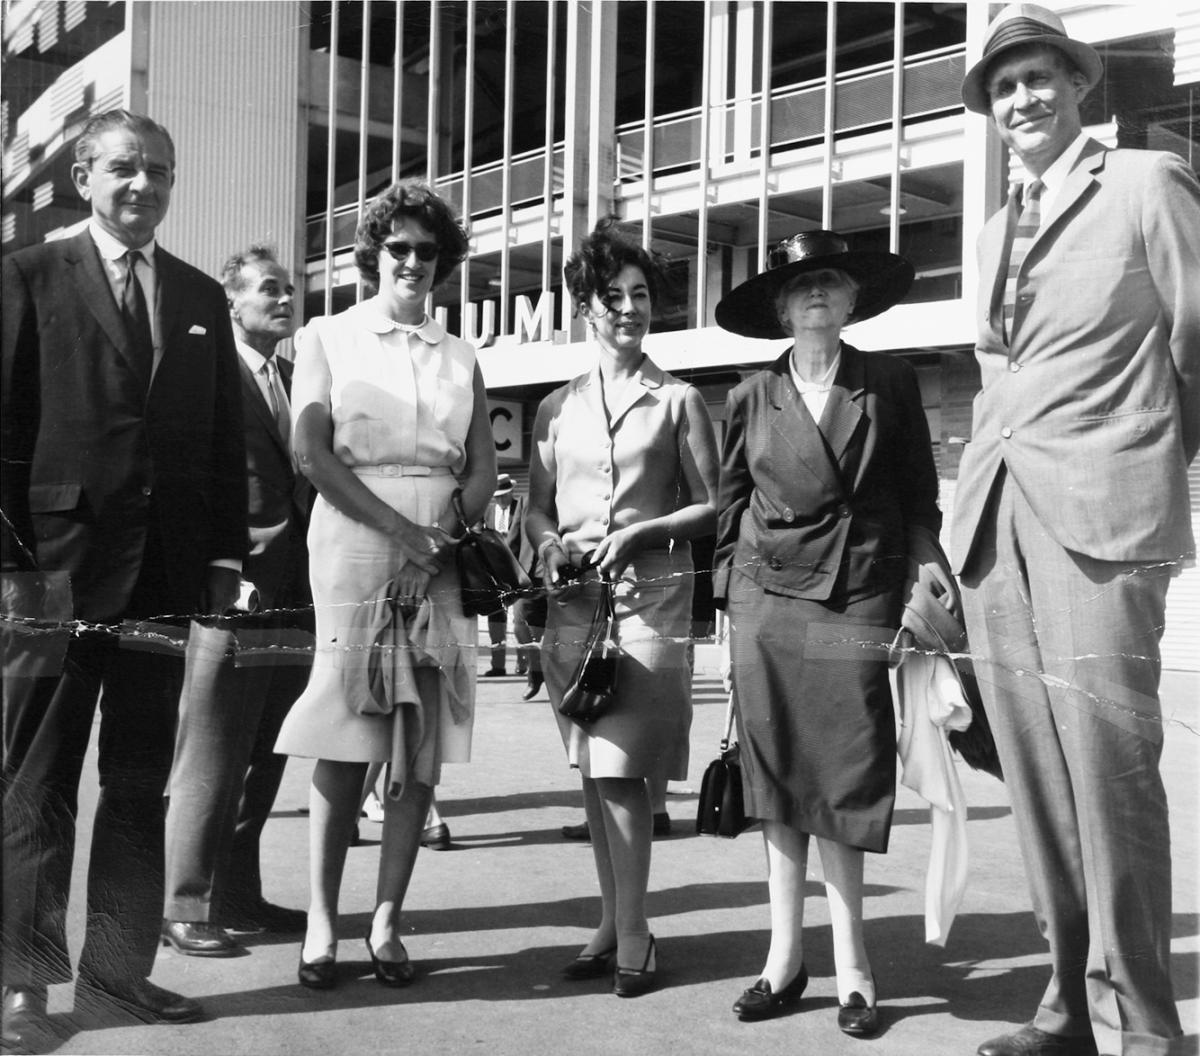 unidentified man (standing back) Monroe Wheeler, Ann Laughlin, Gertrude Vanderbilt Whitney, Marianne Moore, and James Laughlin standing outside Shea Stadium in Queens for a New York Mets baseball game.